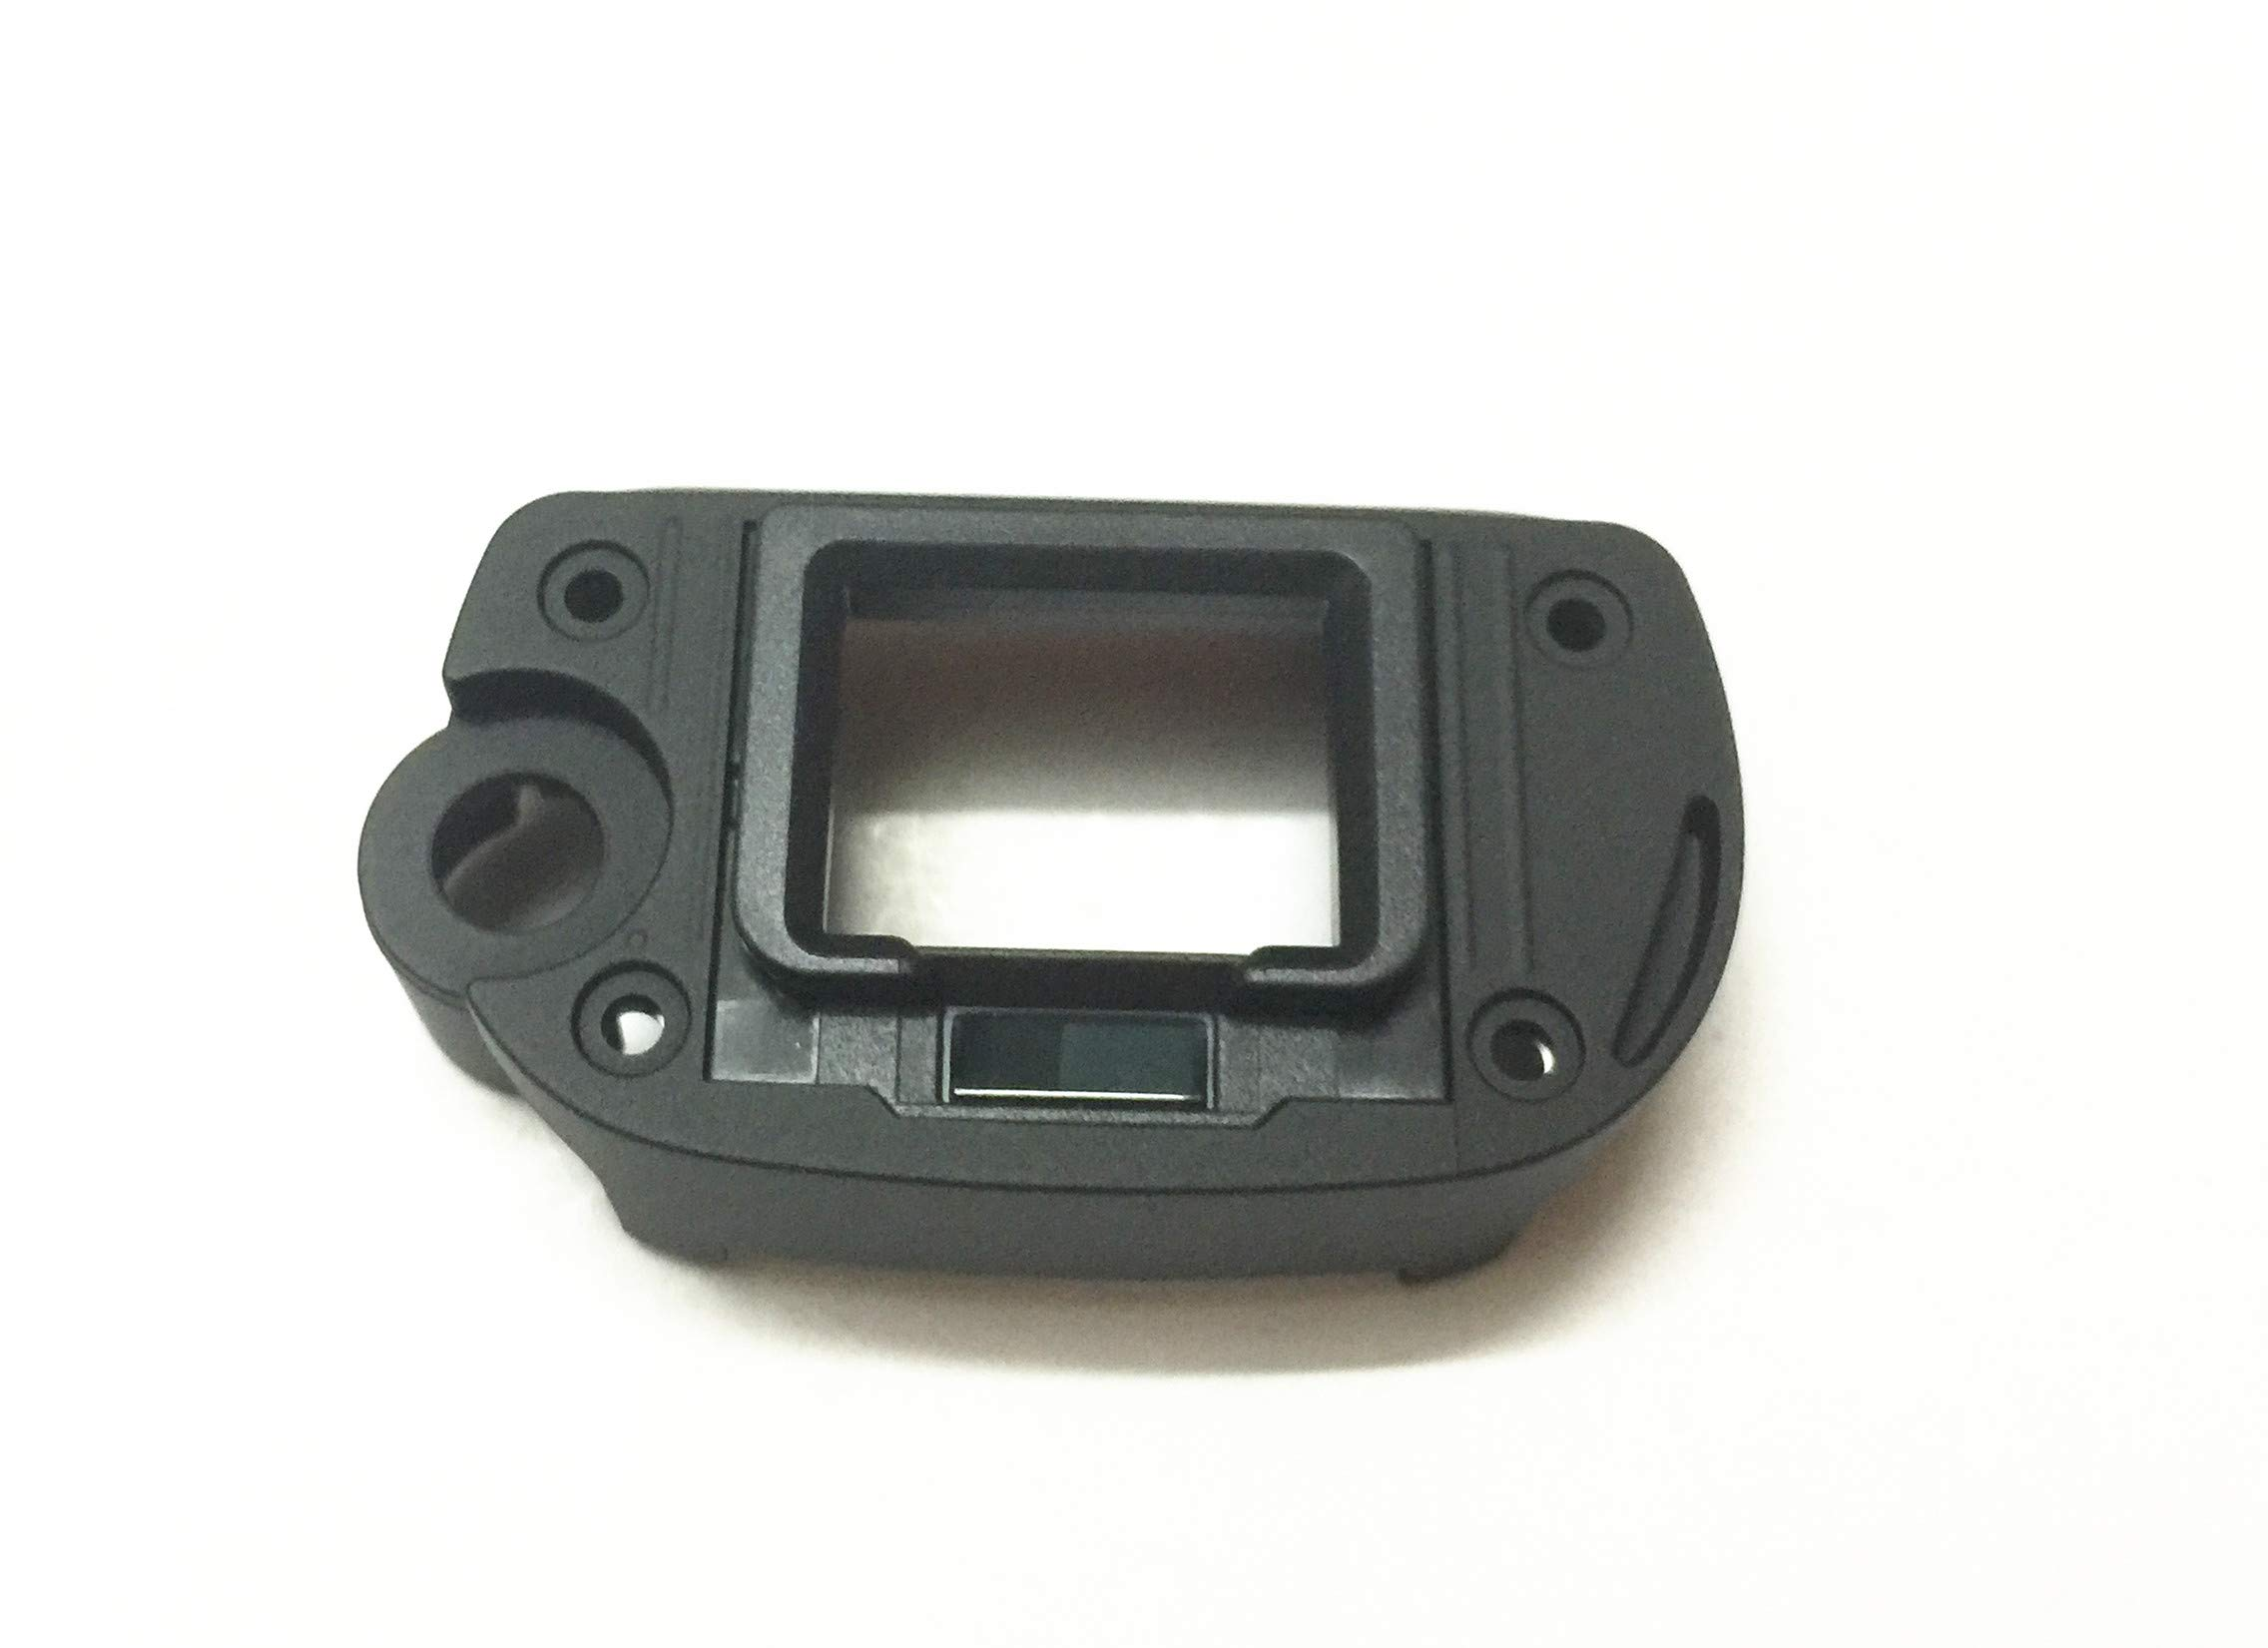 Replacement New Viewfinder Cover Eye Cup Base Bracket Assy X25919301 for Sony ILCE-7RM2 A7R II ILCE-7SM2 A7S II